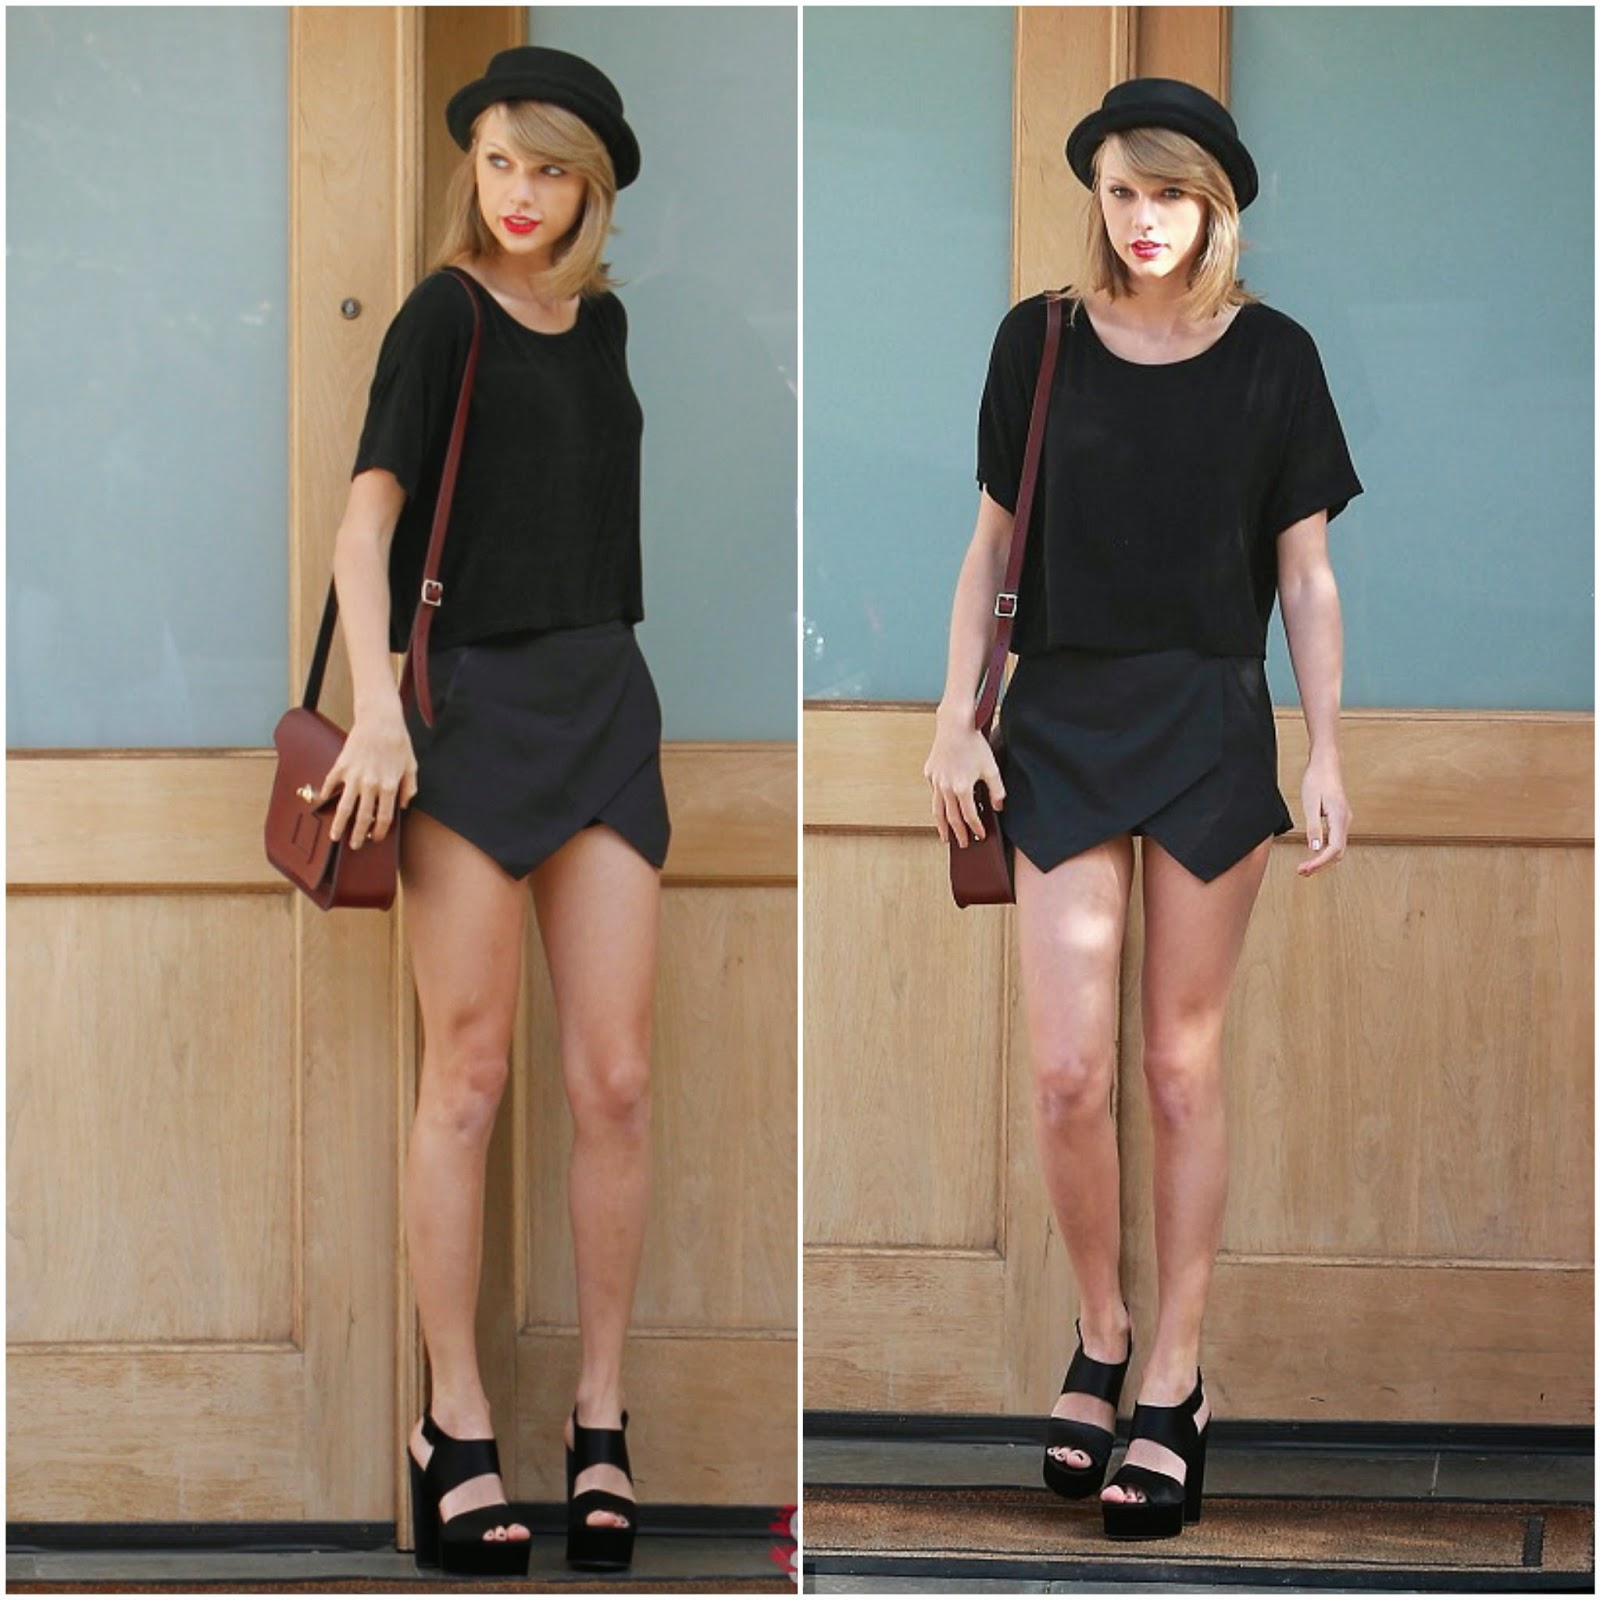 Taylor Swift Flaunts Legs In Skorts.